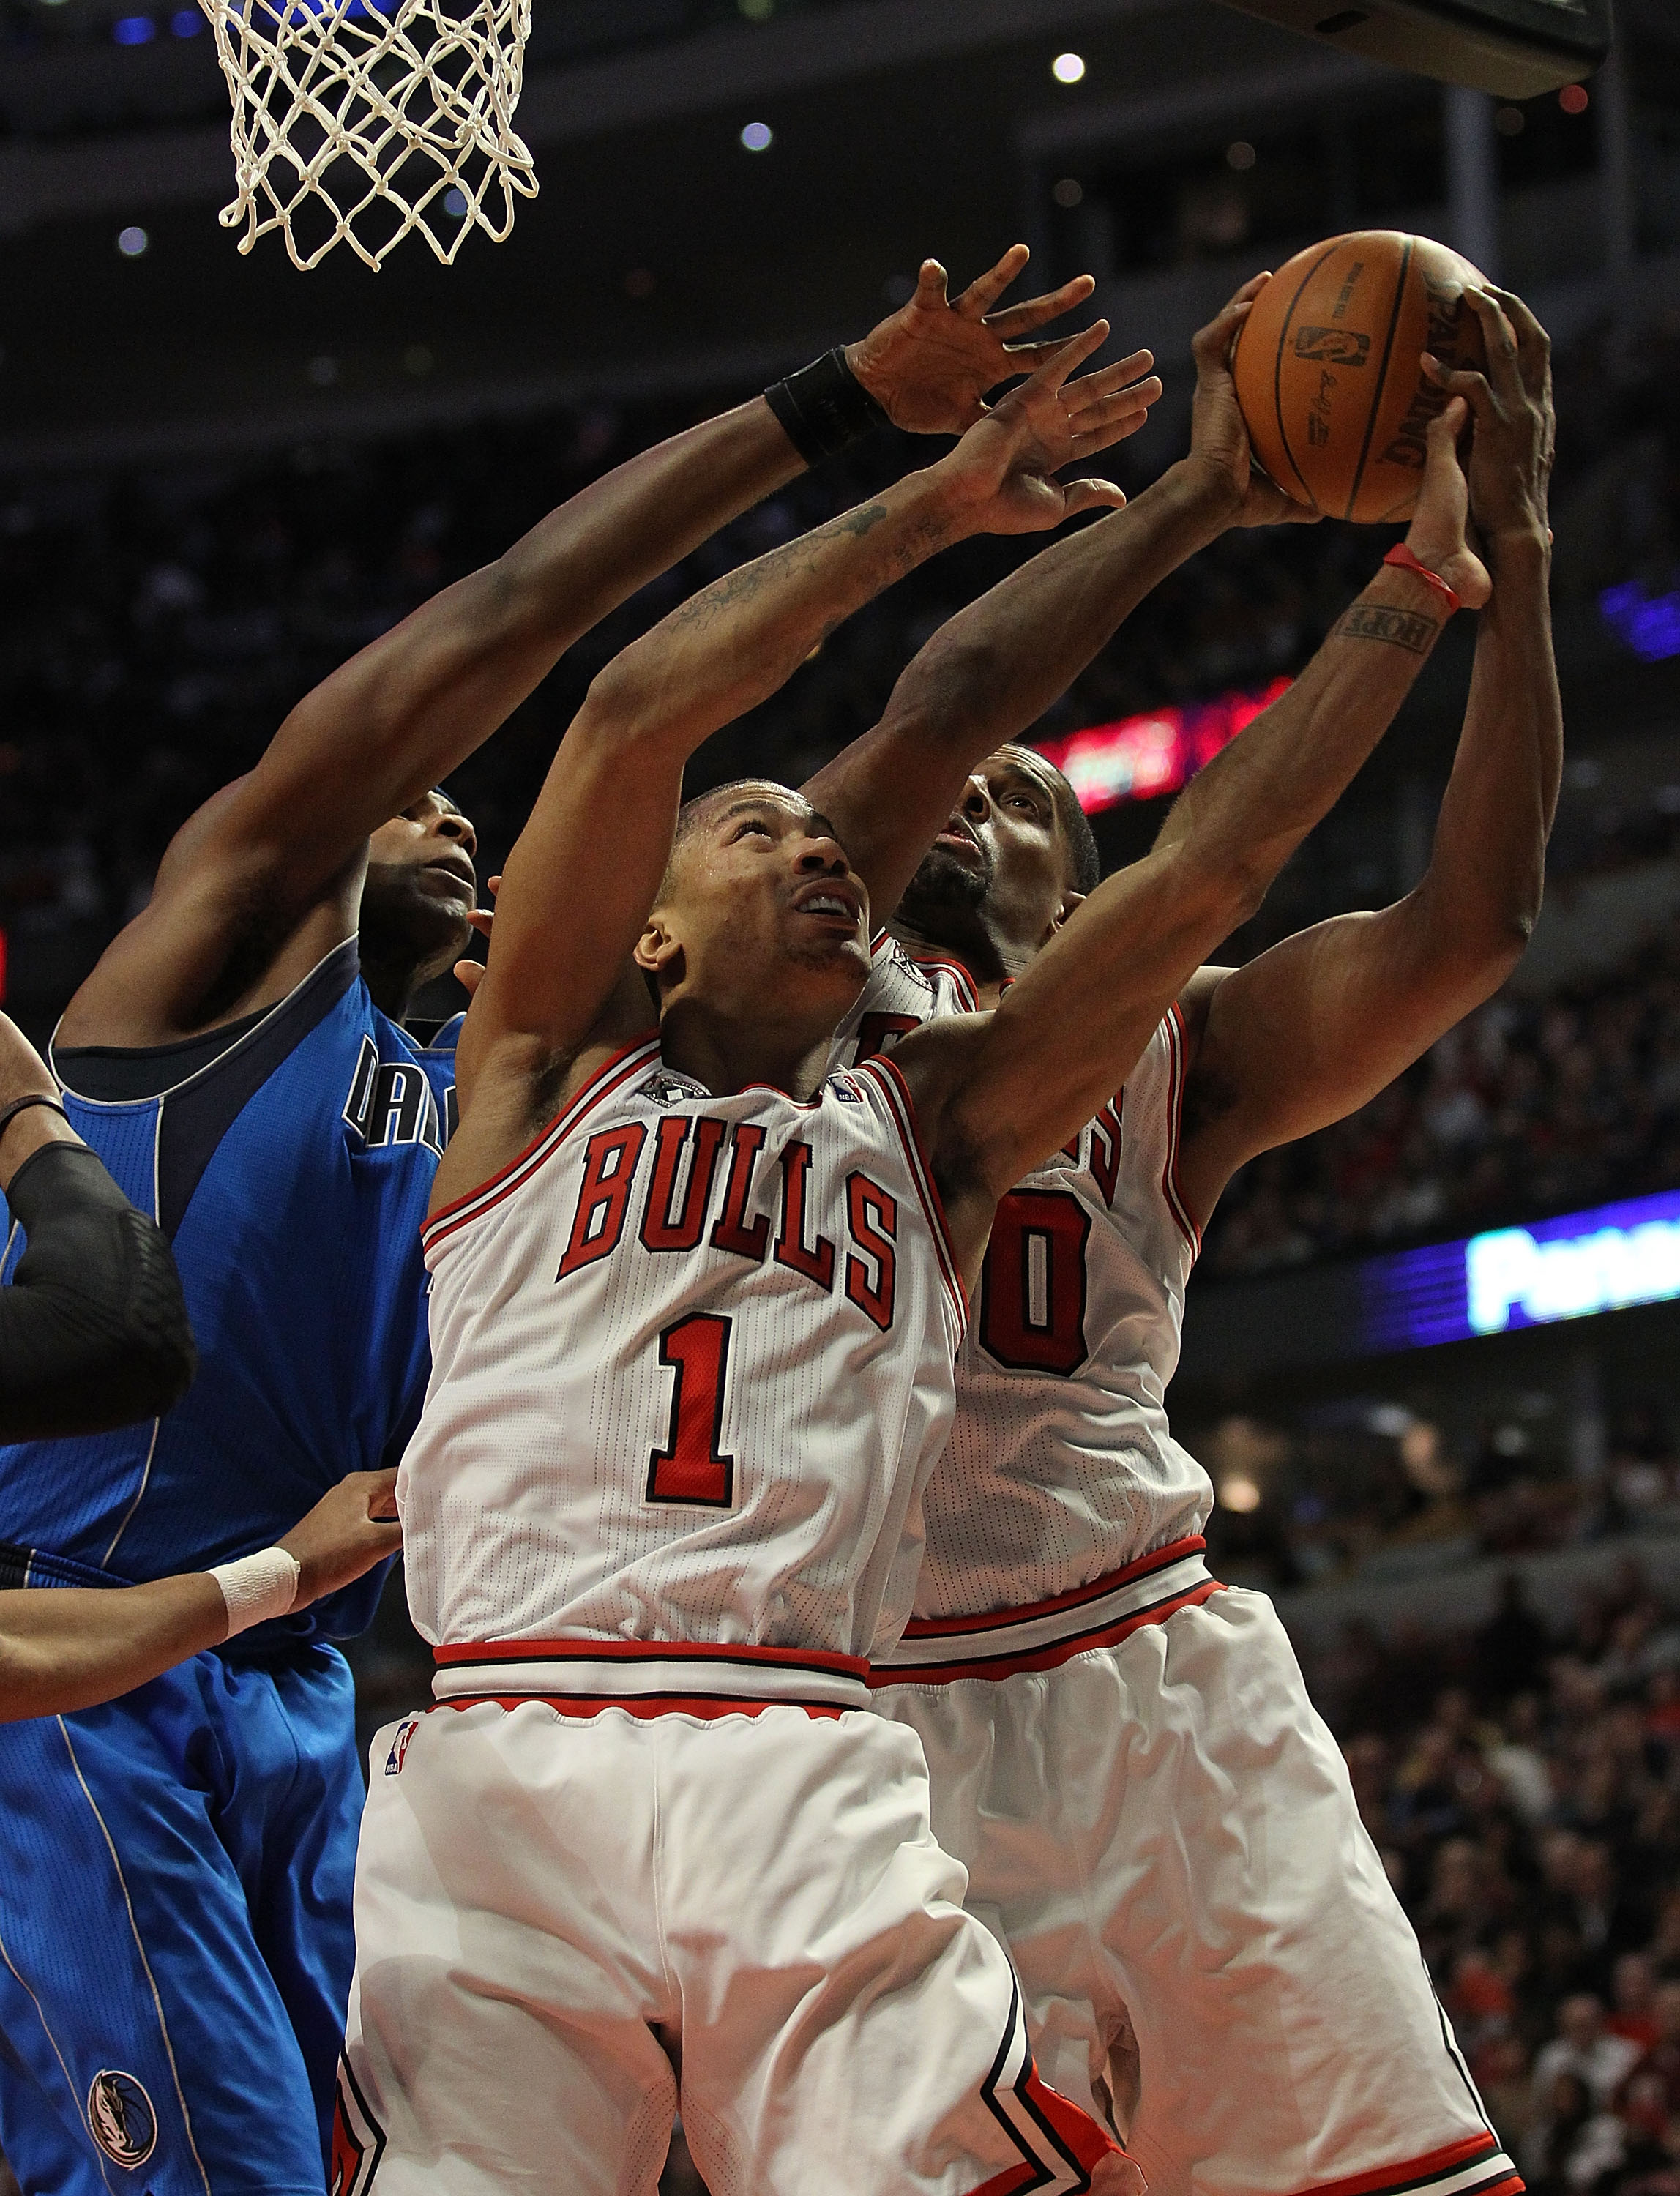 CHICAGO, IL - JANUARY 20: Derrick Rose #1 and Kurt Thomas #40 of the Chicago Bulls battle for a rebound with Brendan Haywood #33 of the Dallas Mavericks at the United Center on January 20, 2011 in Chicago, Illinois. The Bulls defeated the Mavericks 82-77.